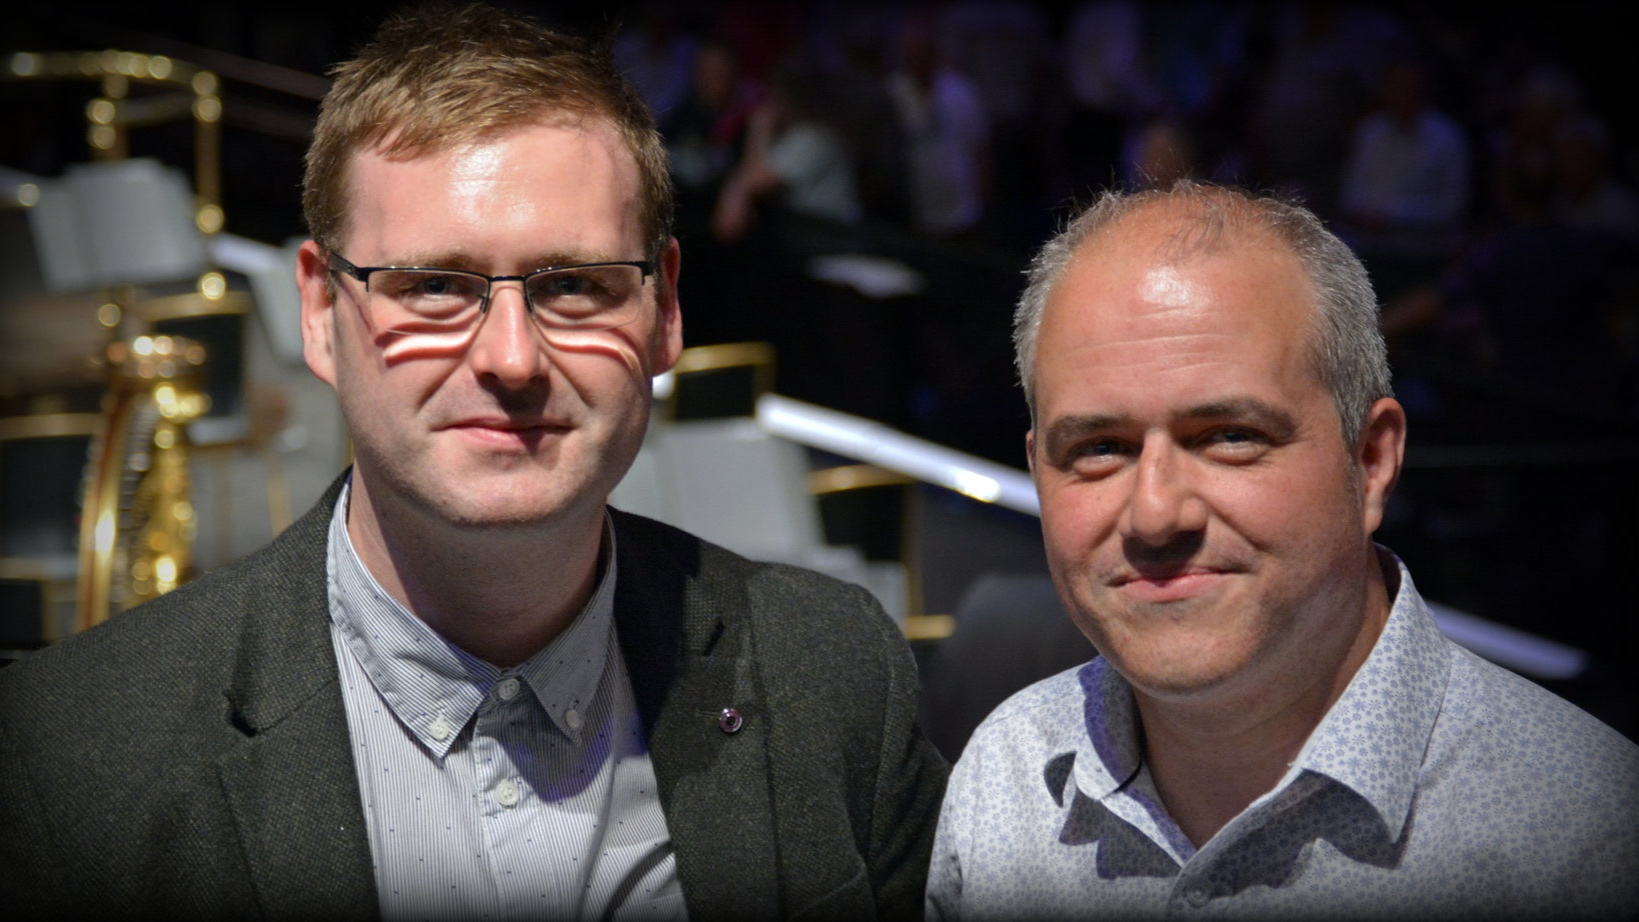 Shea Lolin (left) and Christopher Hussey (right) at the First Night of the 2015 BBC Proms.